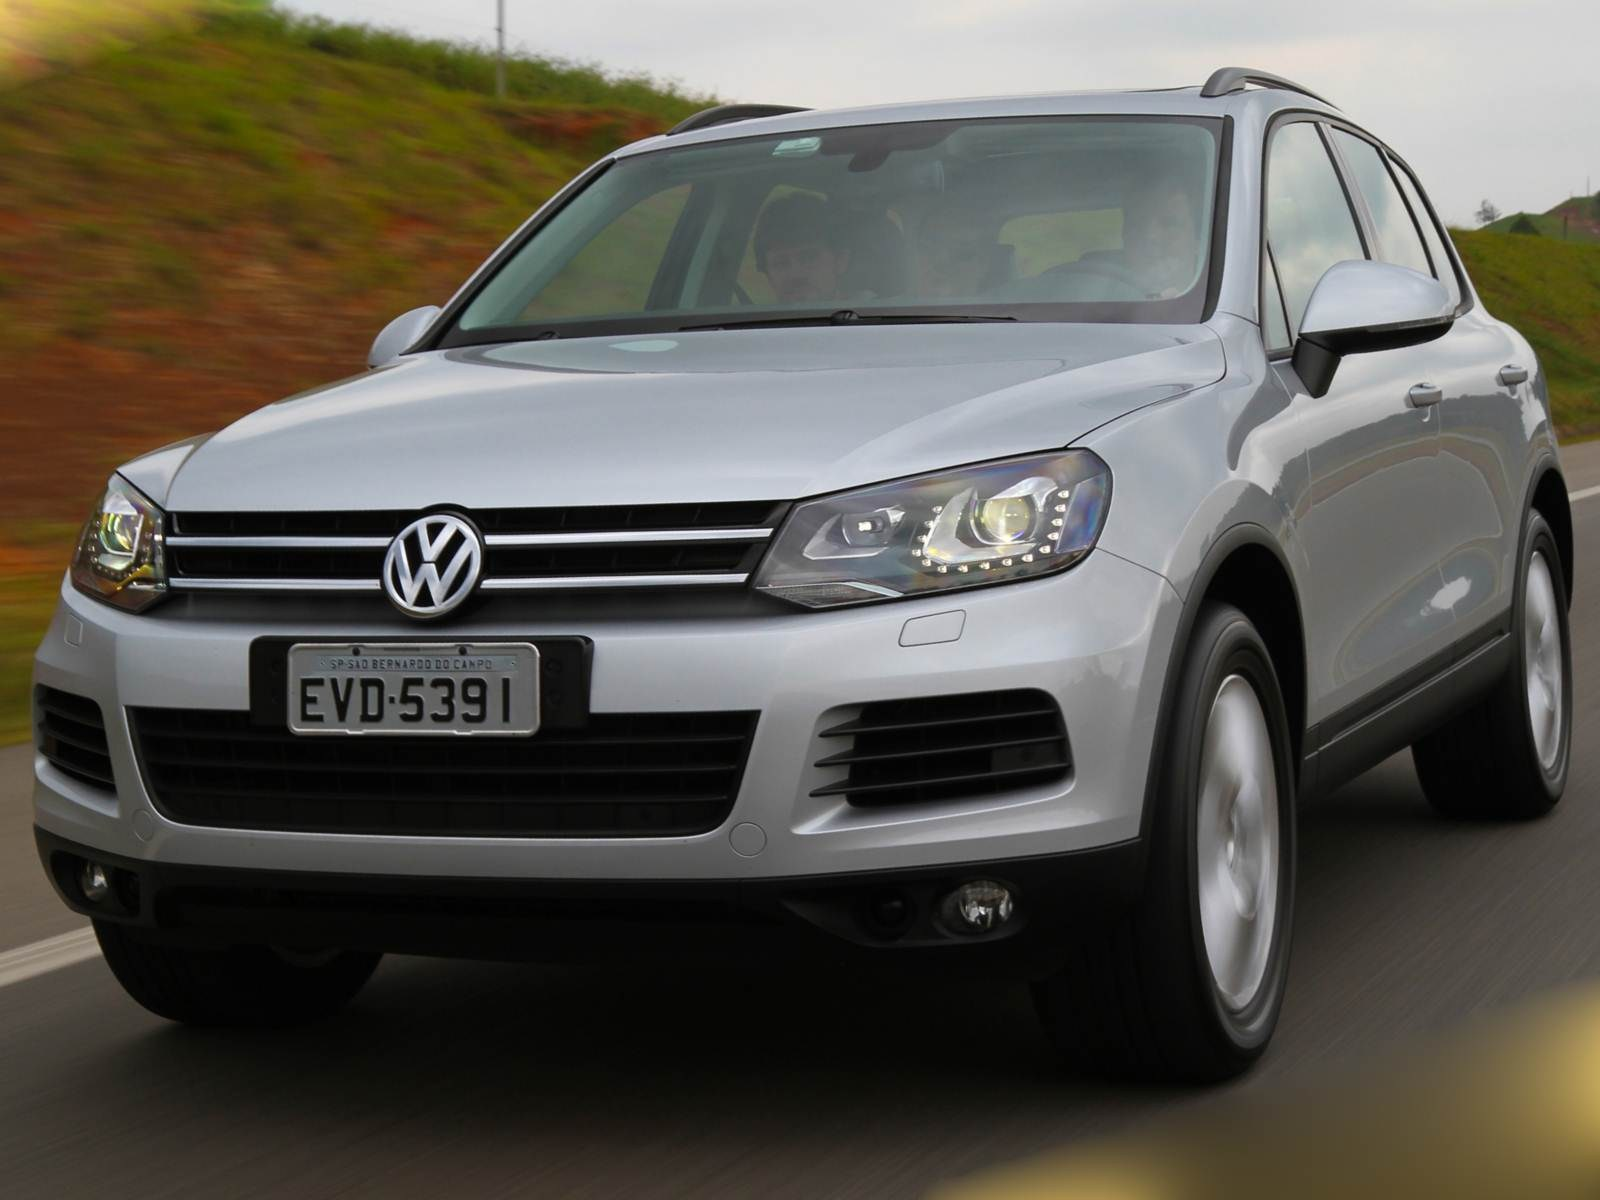 2015 volkswagen touareg cc hd images 2018 hd cars wallpapers. Black Bedroom Furniture Sets. Home Design Ideas